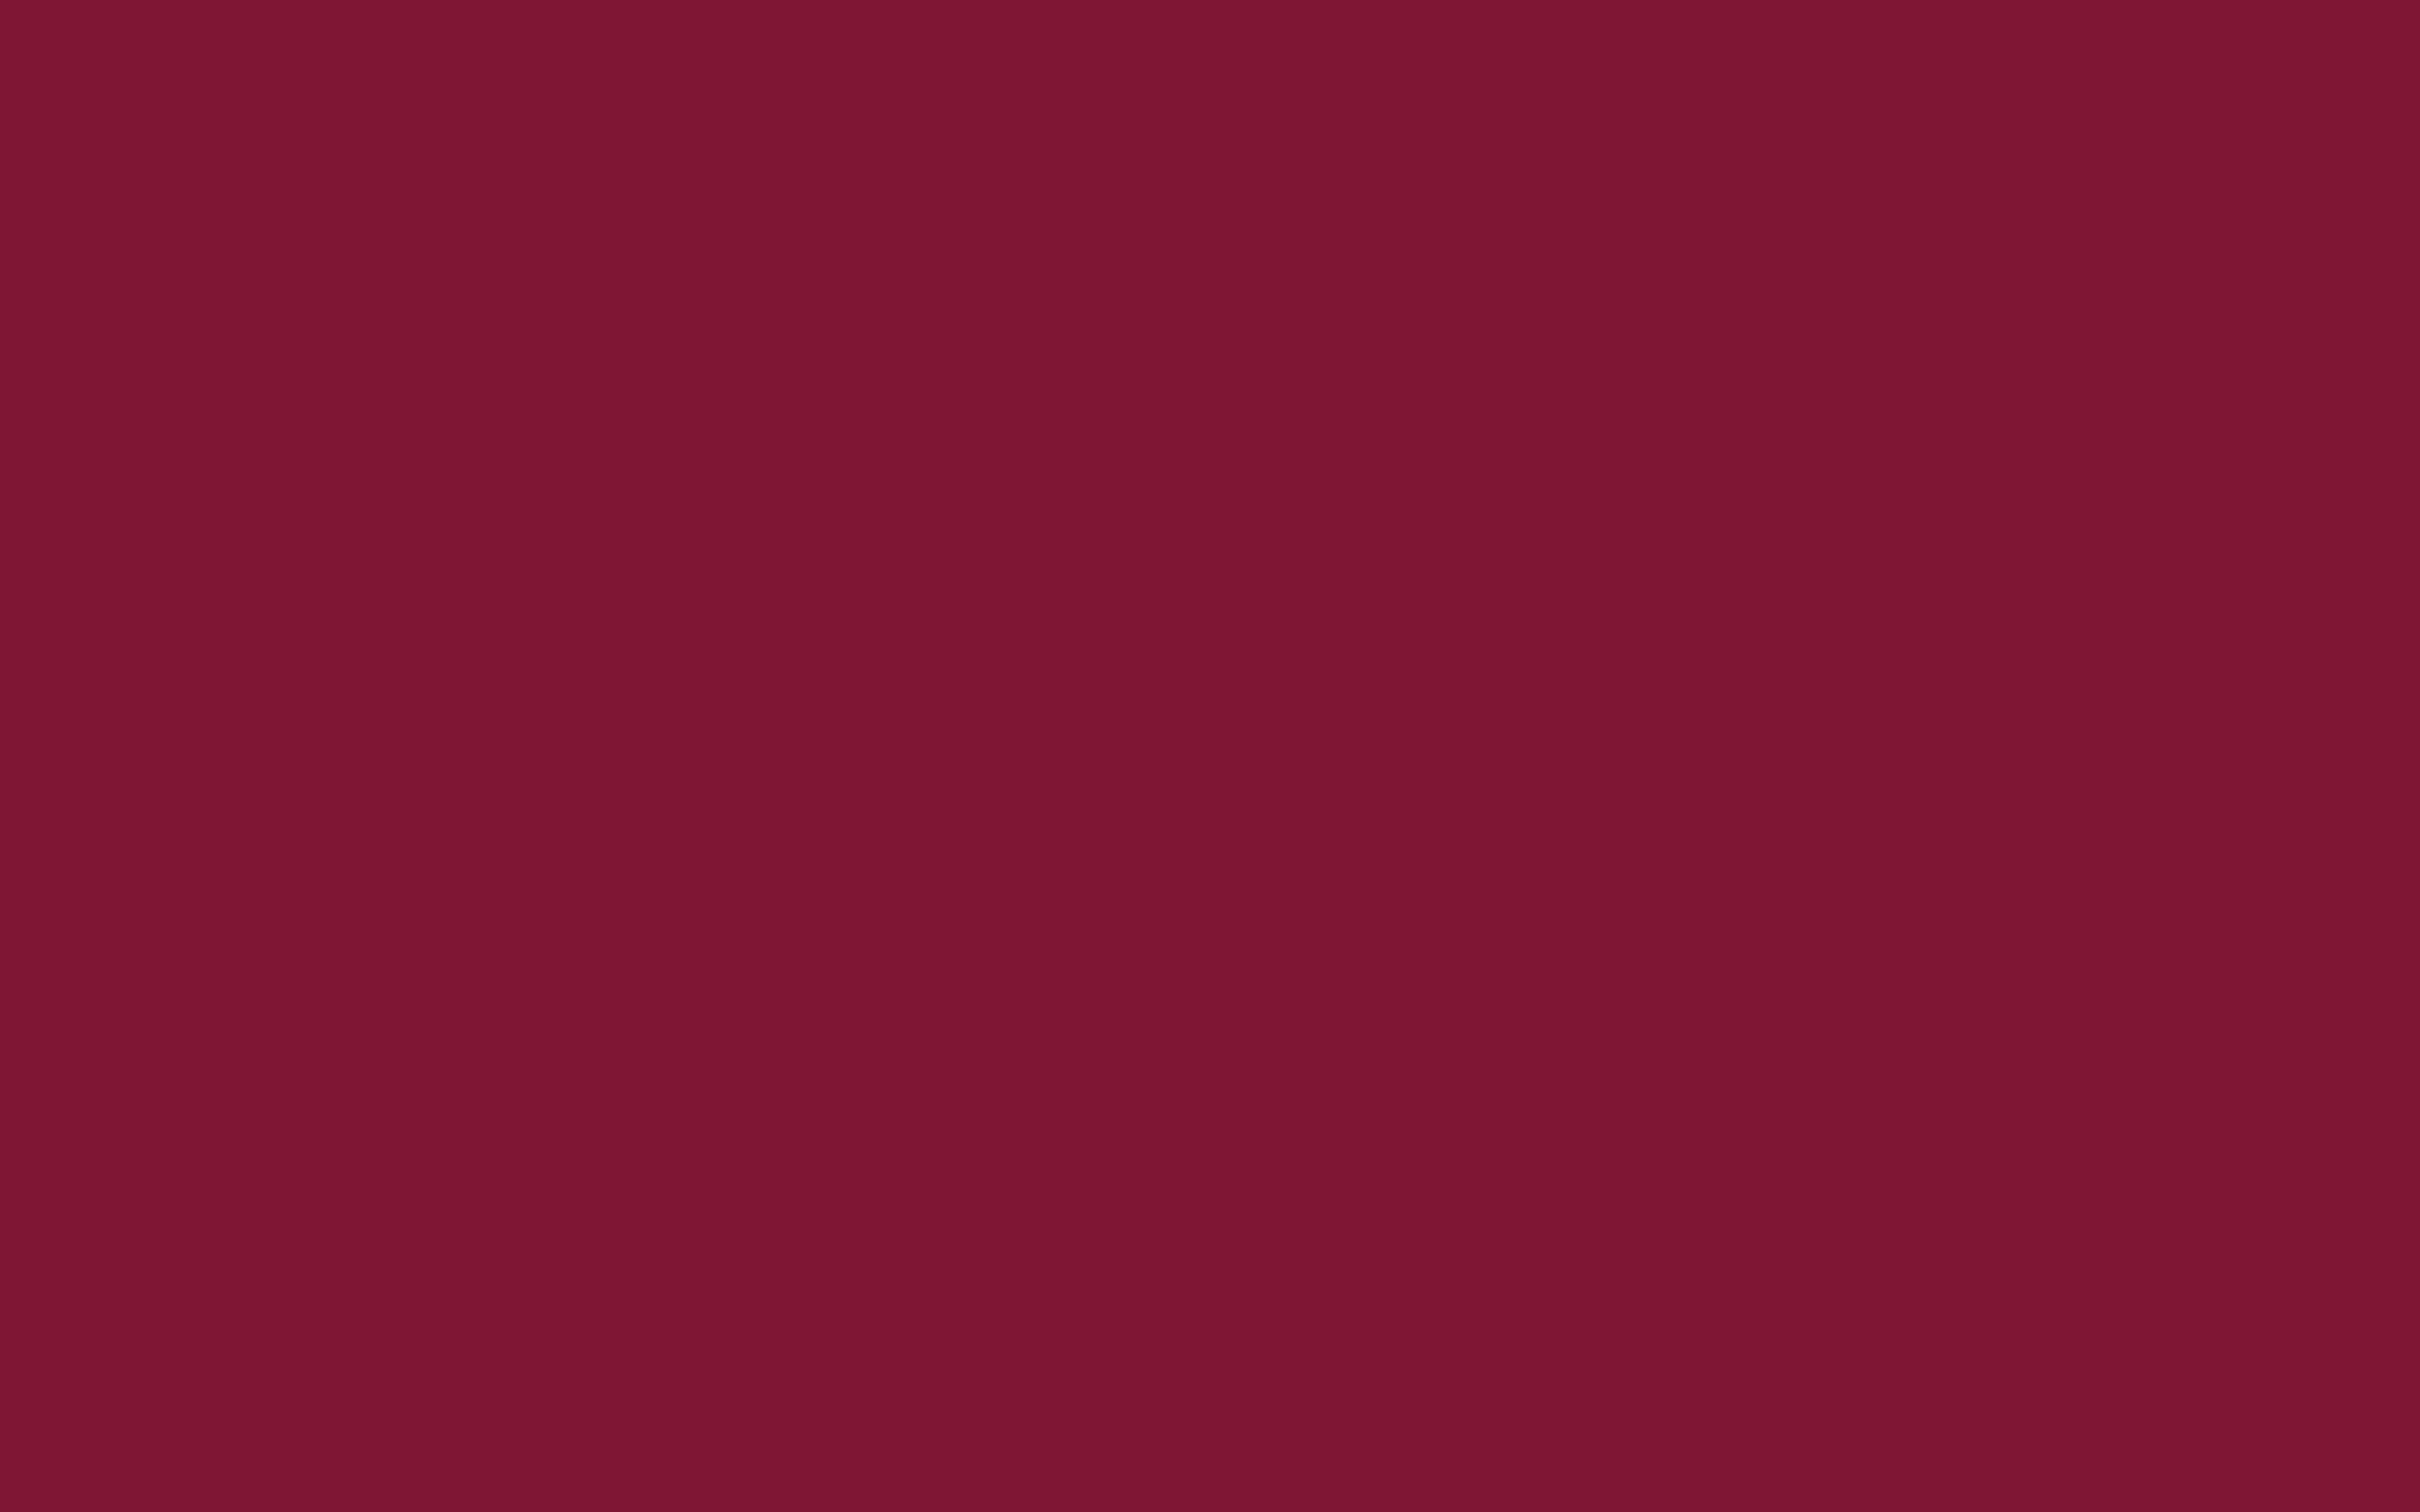 2880x1800 Claret Solid Color Background